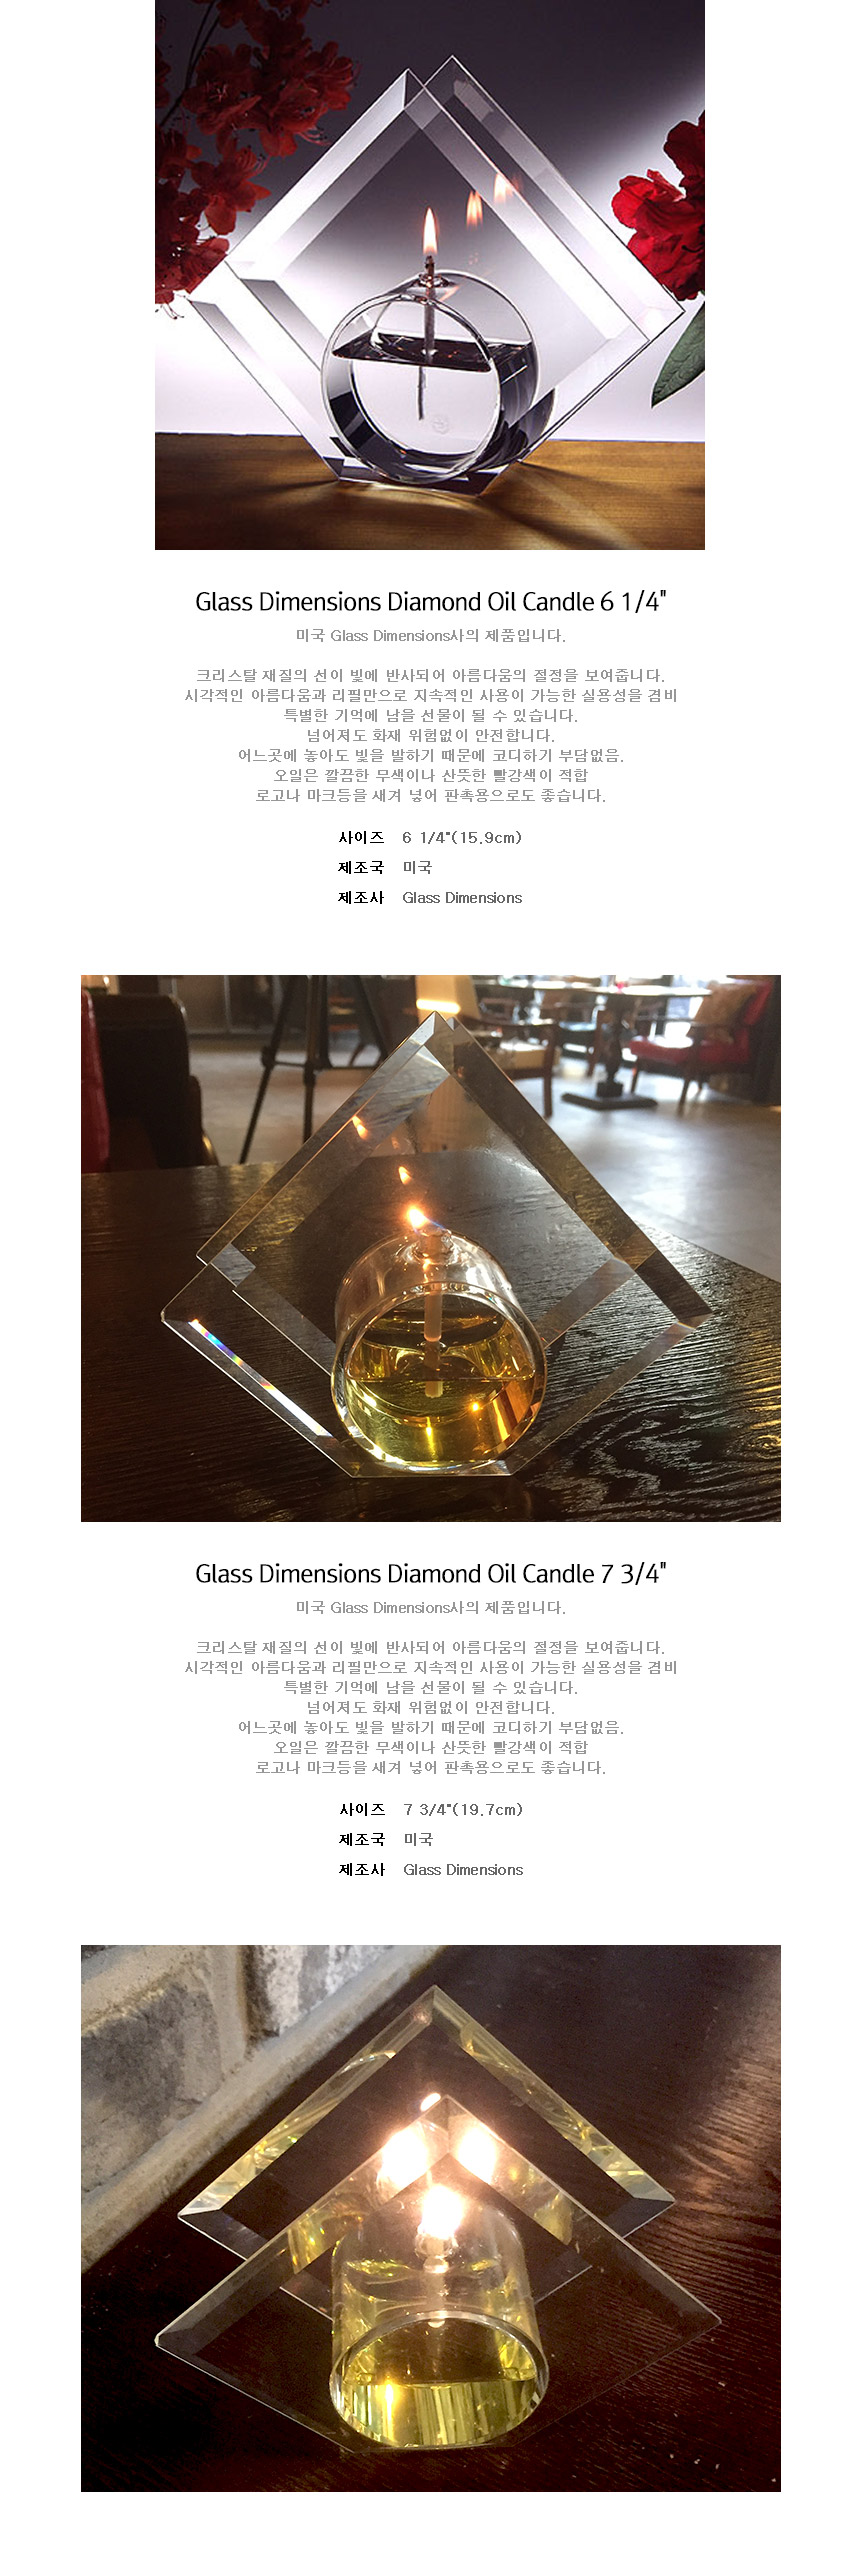 램프플러스 Glass Dimensions Diamond Oil Candle